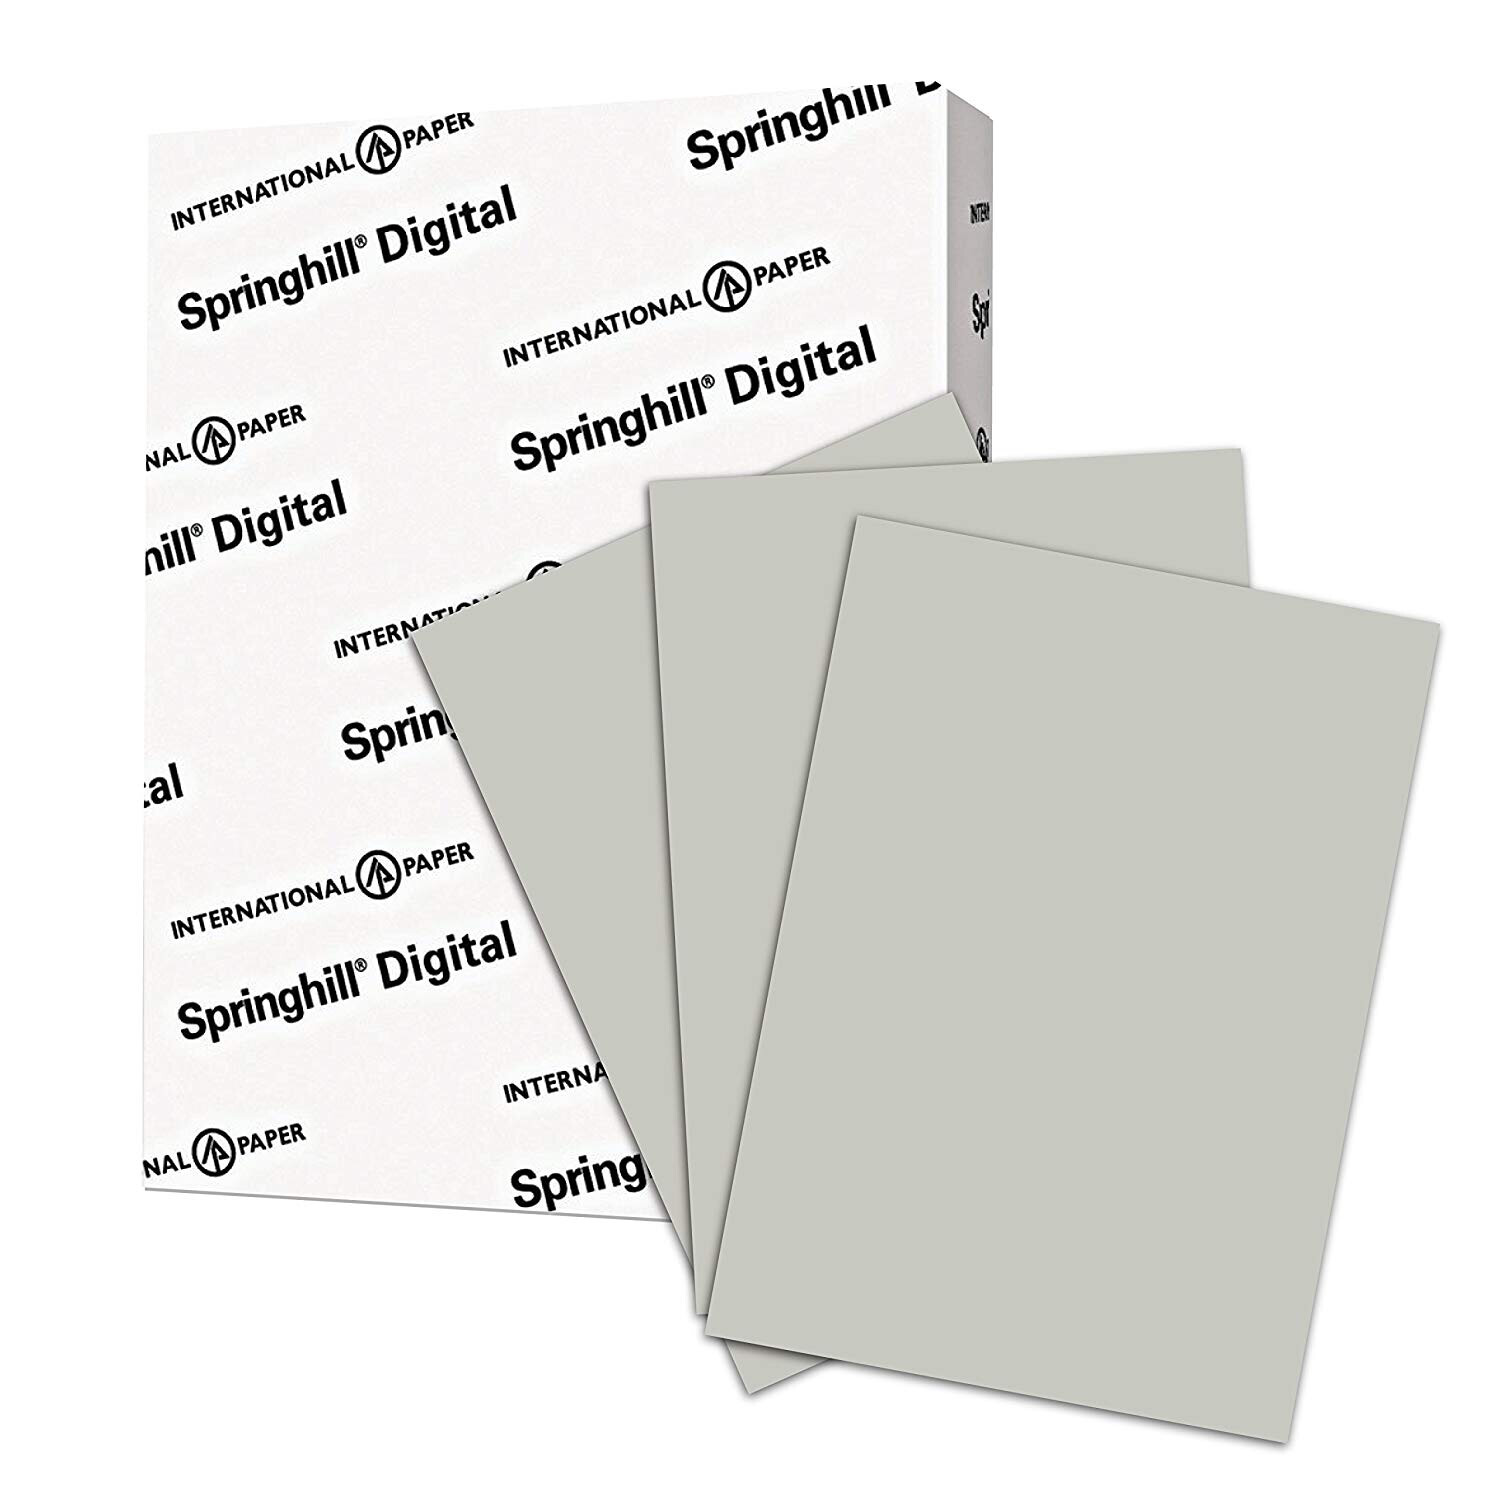 Springhill / Colored Paper, Cardstock Paper, Gray Paper, 67lb, 147gsm, 8.5 x 11, 1 Ream / 250 Sheets - Vellum Card Stock, Thick Paper (066000R)